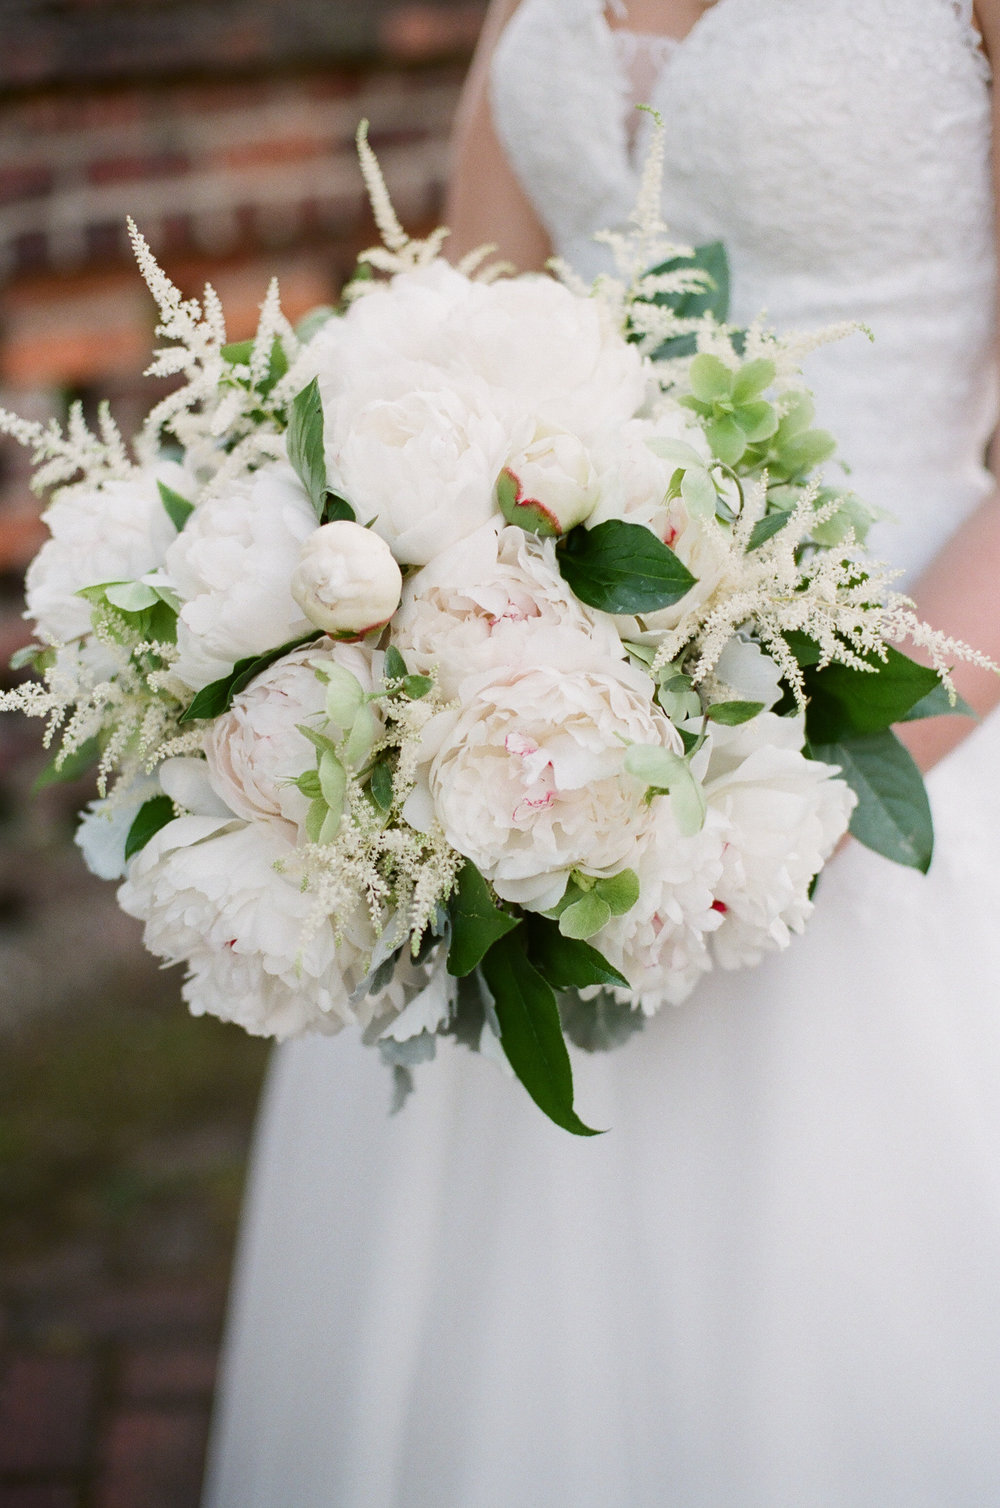 featured floral: peonies, astillbe, hellebores, dusty miller, - Binford + Neil, Old Medical College, Ashley Seawell Photography